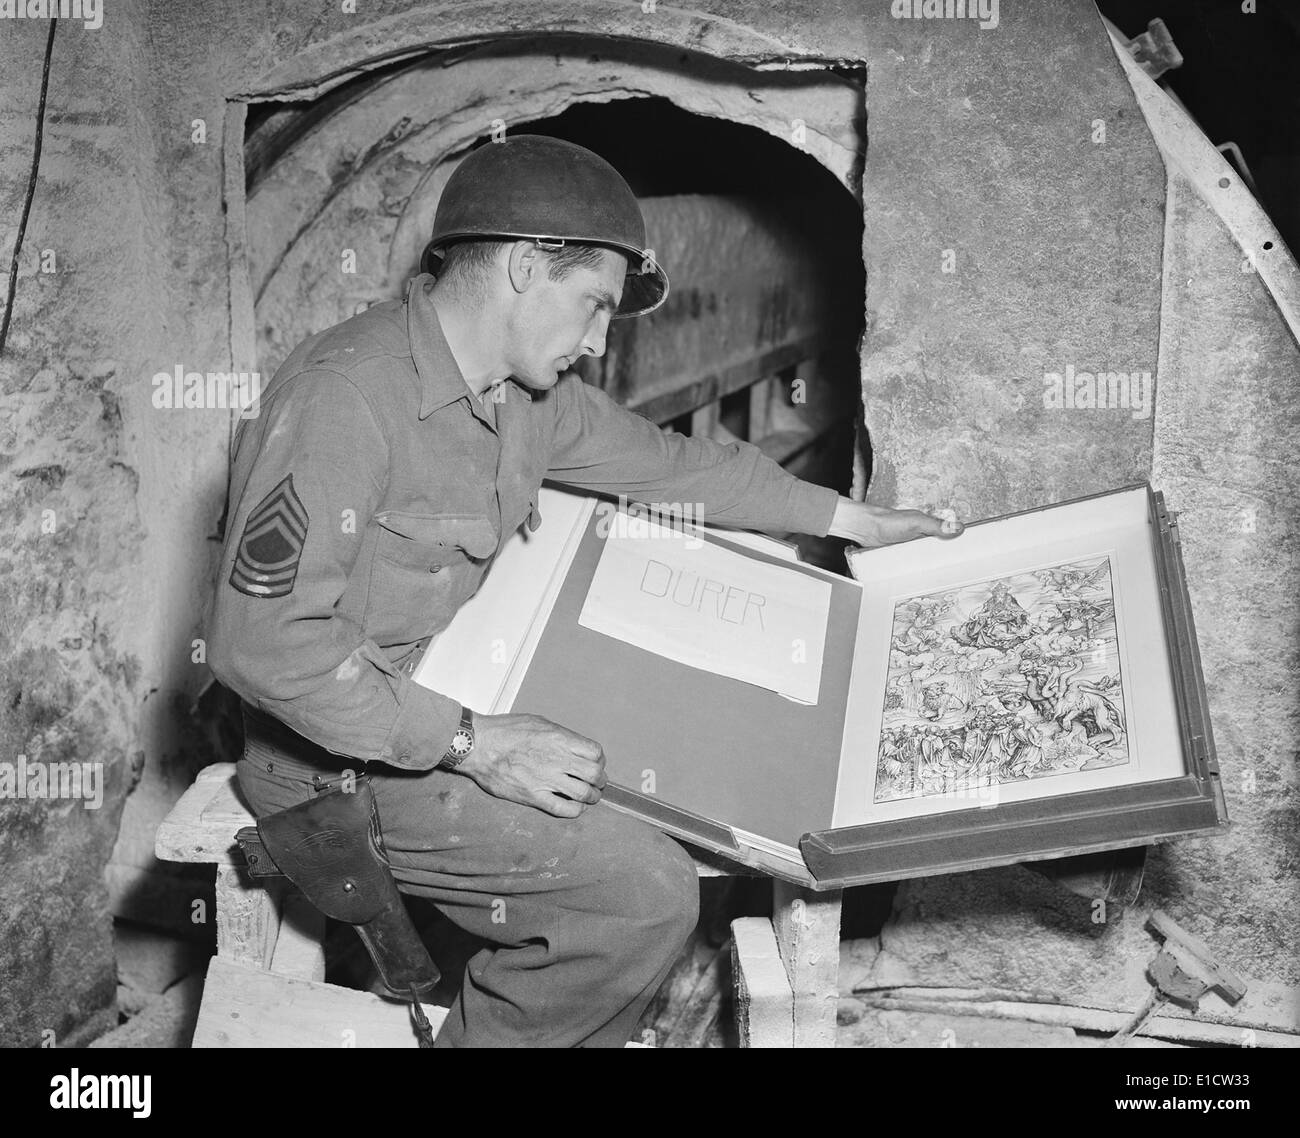 U.S. Army sergeant Harold Maus inspects a Durer engraving hidden in the Merkers salt mine. It is among artworks Stock Photo